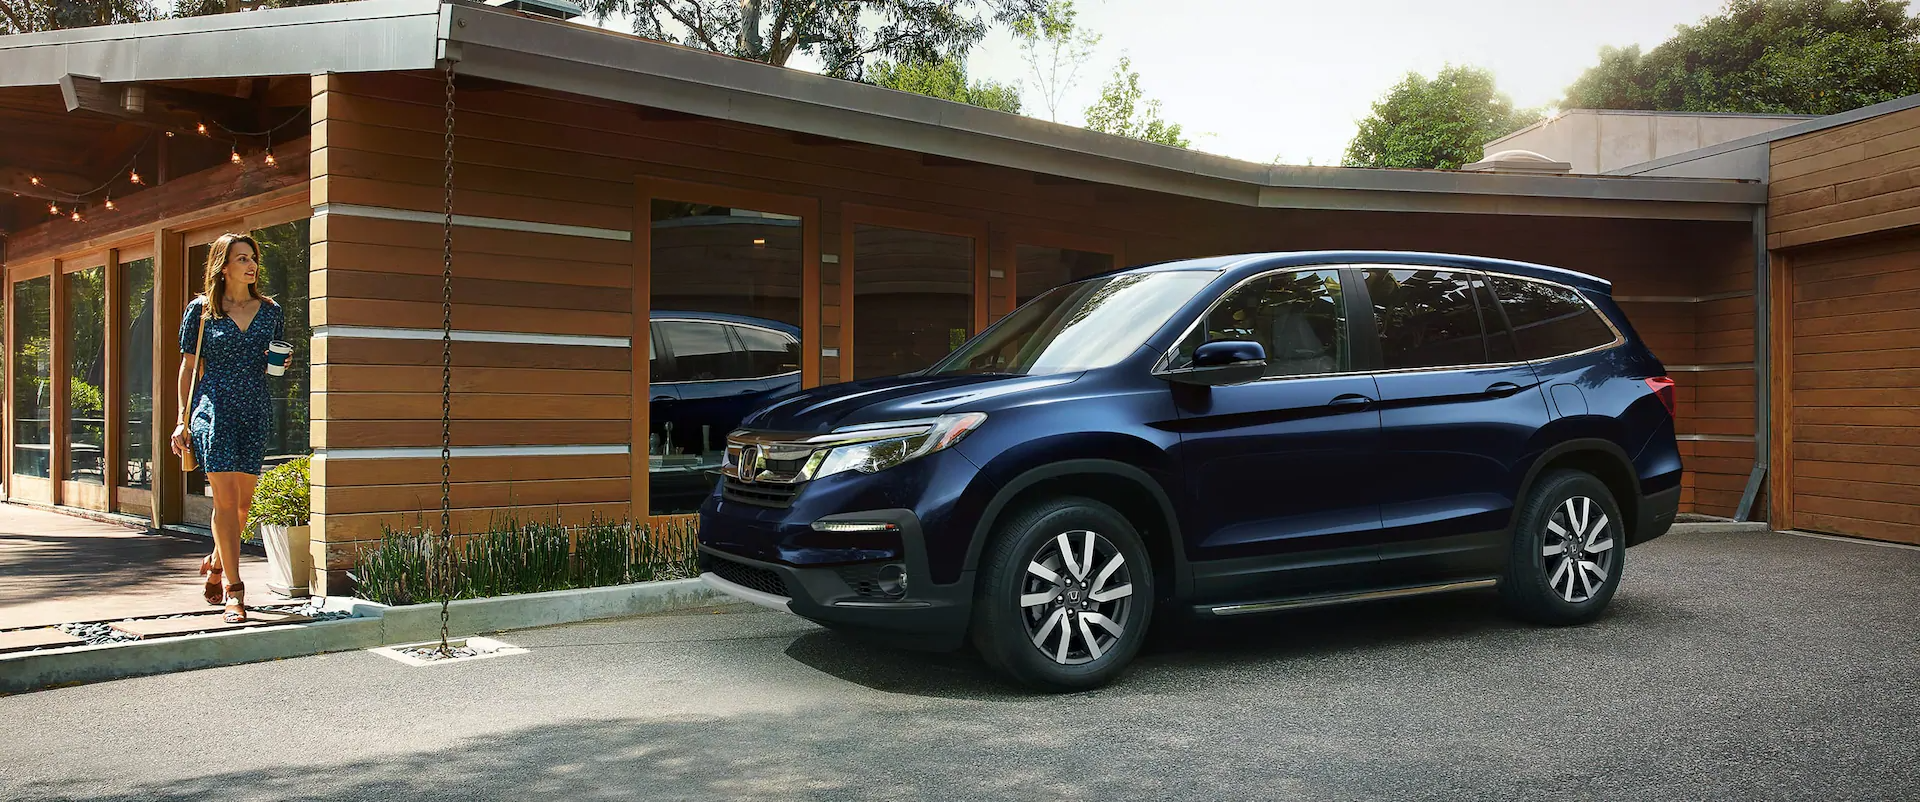 Trim Level Options of the 2020 Honda Pilot Available in Everett